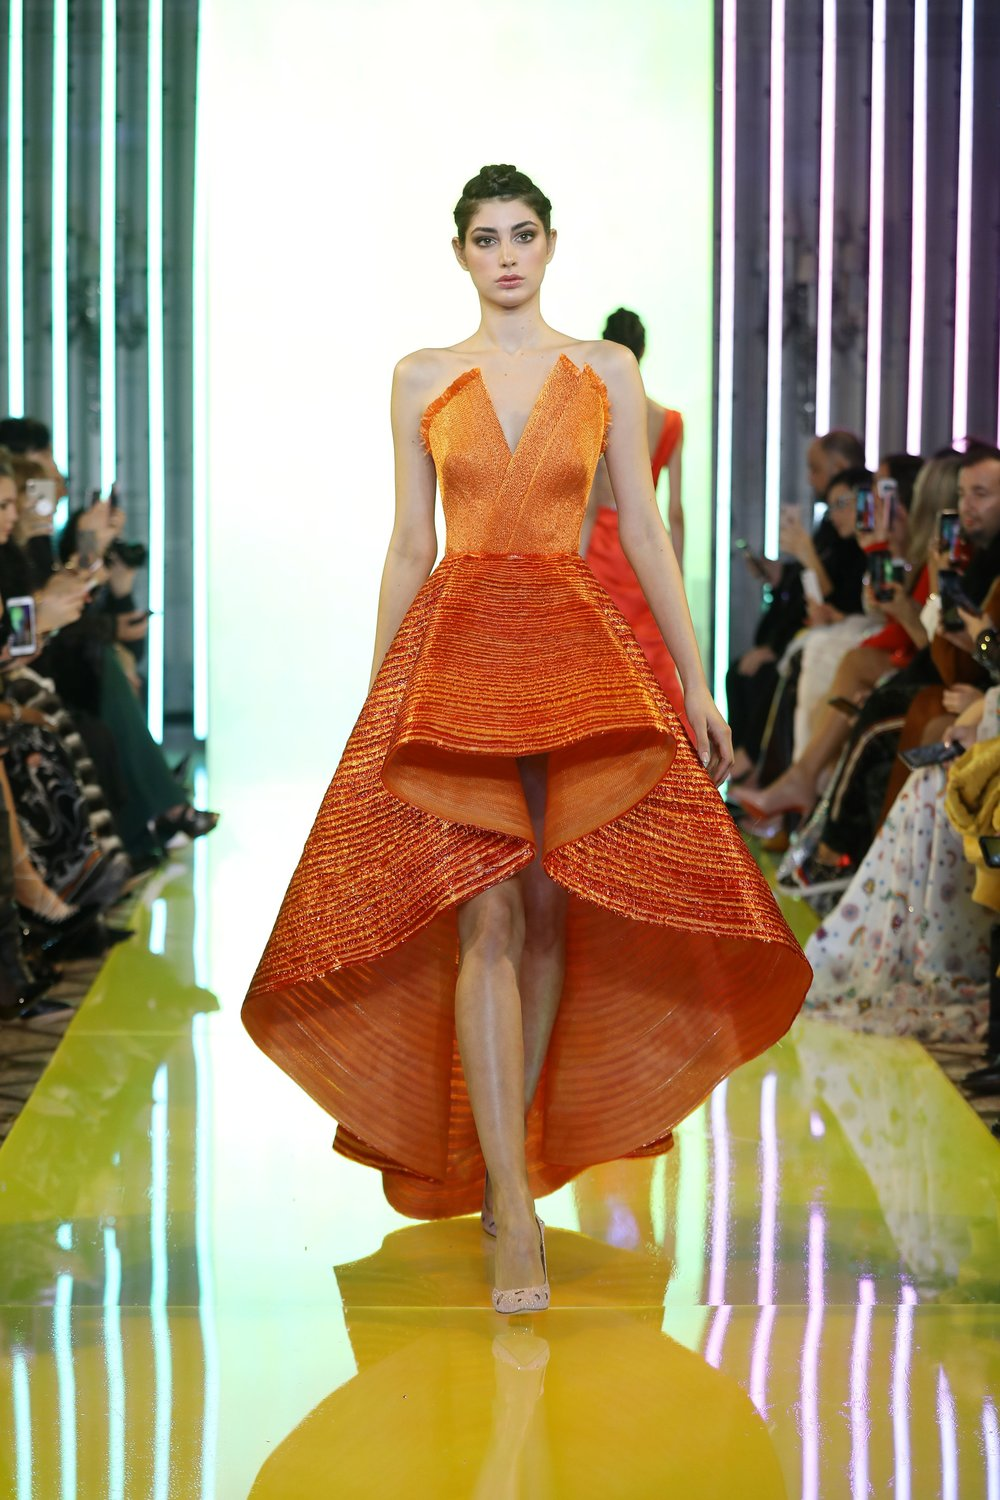 SS19-13 Orange Strapless Gown Featuring A Bodice Embellished With Raffia And A Voluminous Skirt Hand Appliquéd With PVC And Raffia.jpg